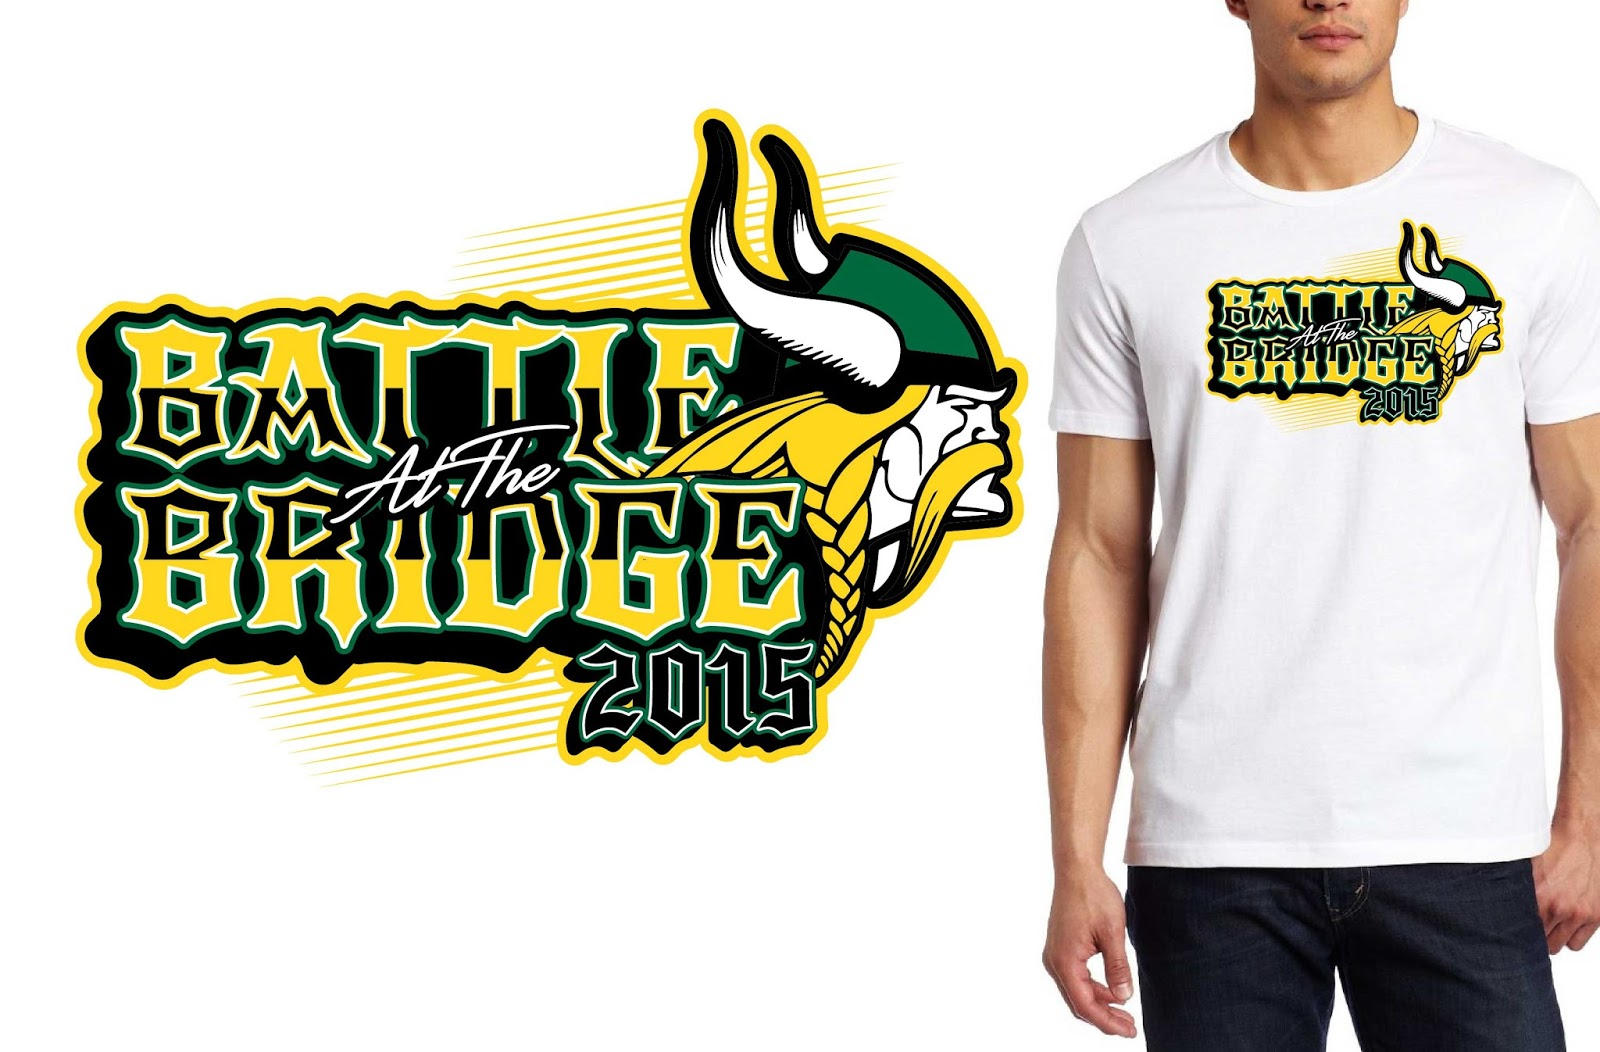 WRESTLING TSHIRT DESIGN FOR 2015 Battle of the Bridge BY URARTSTUDIO